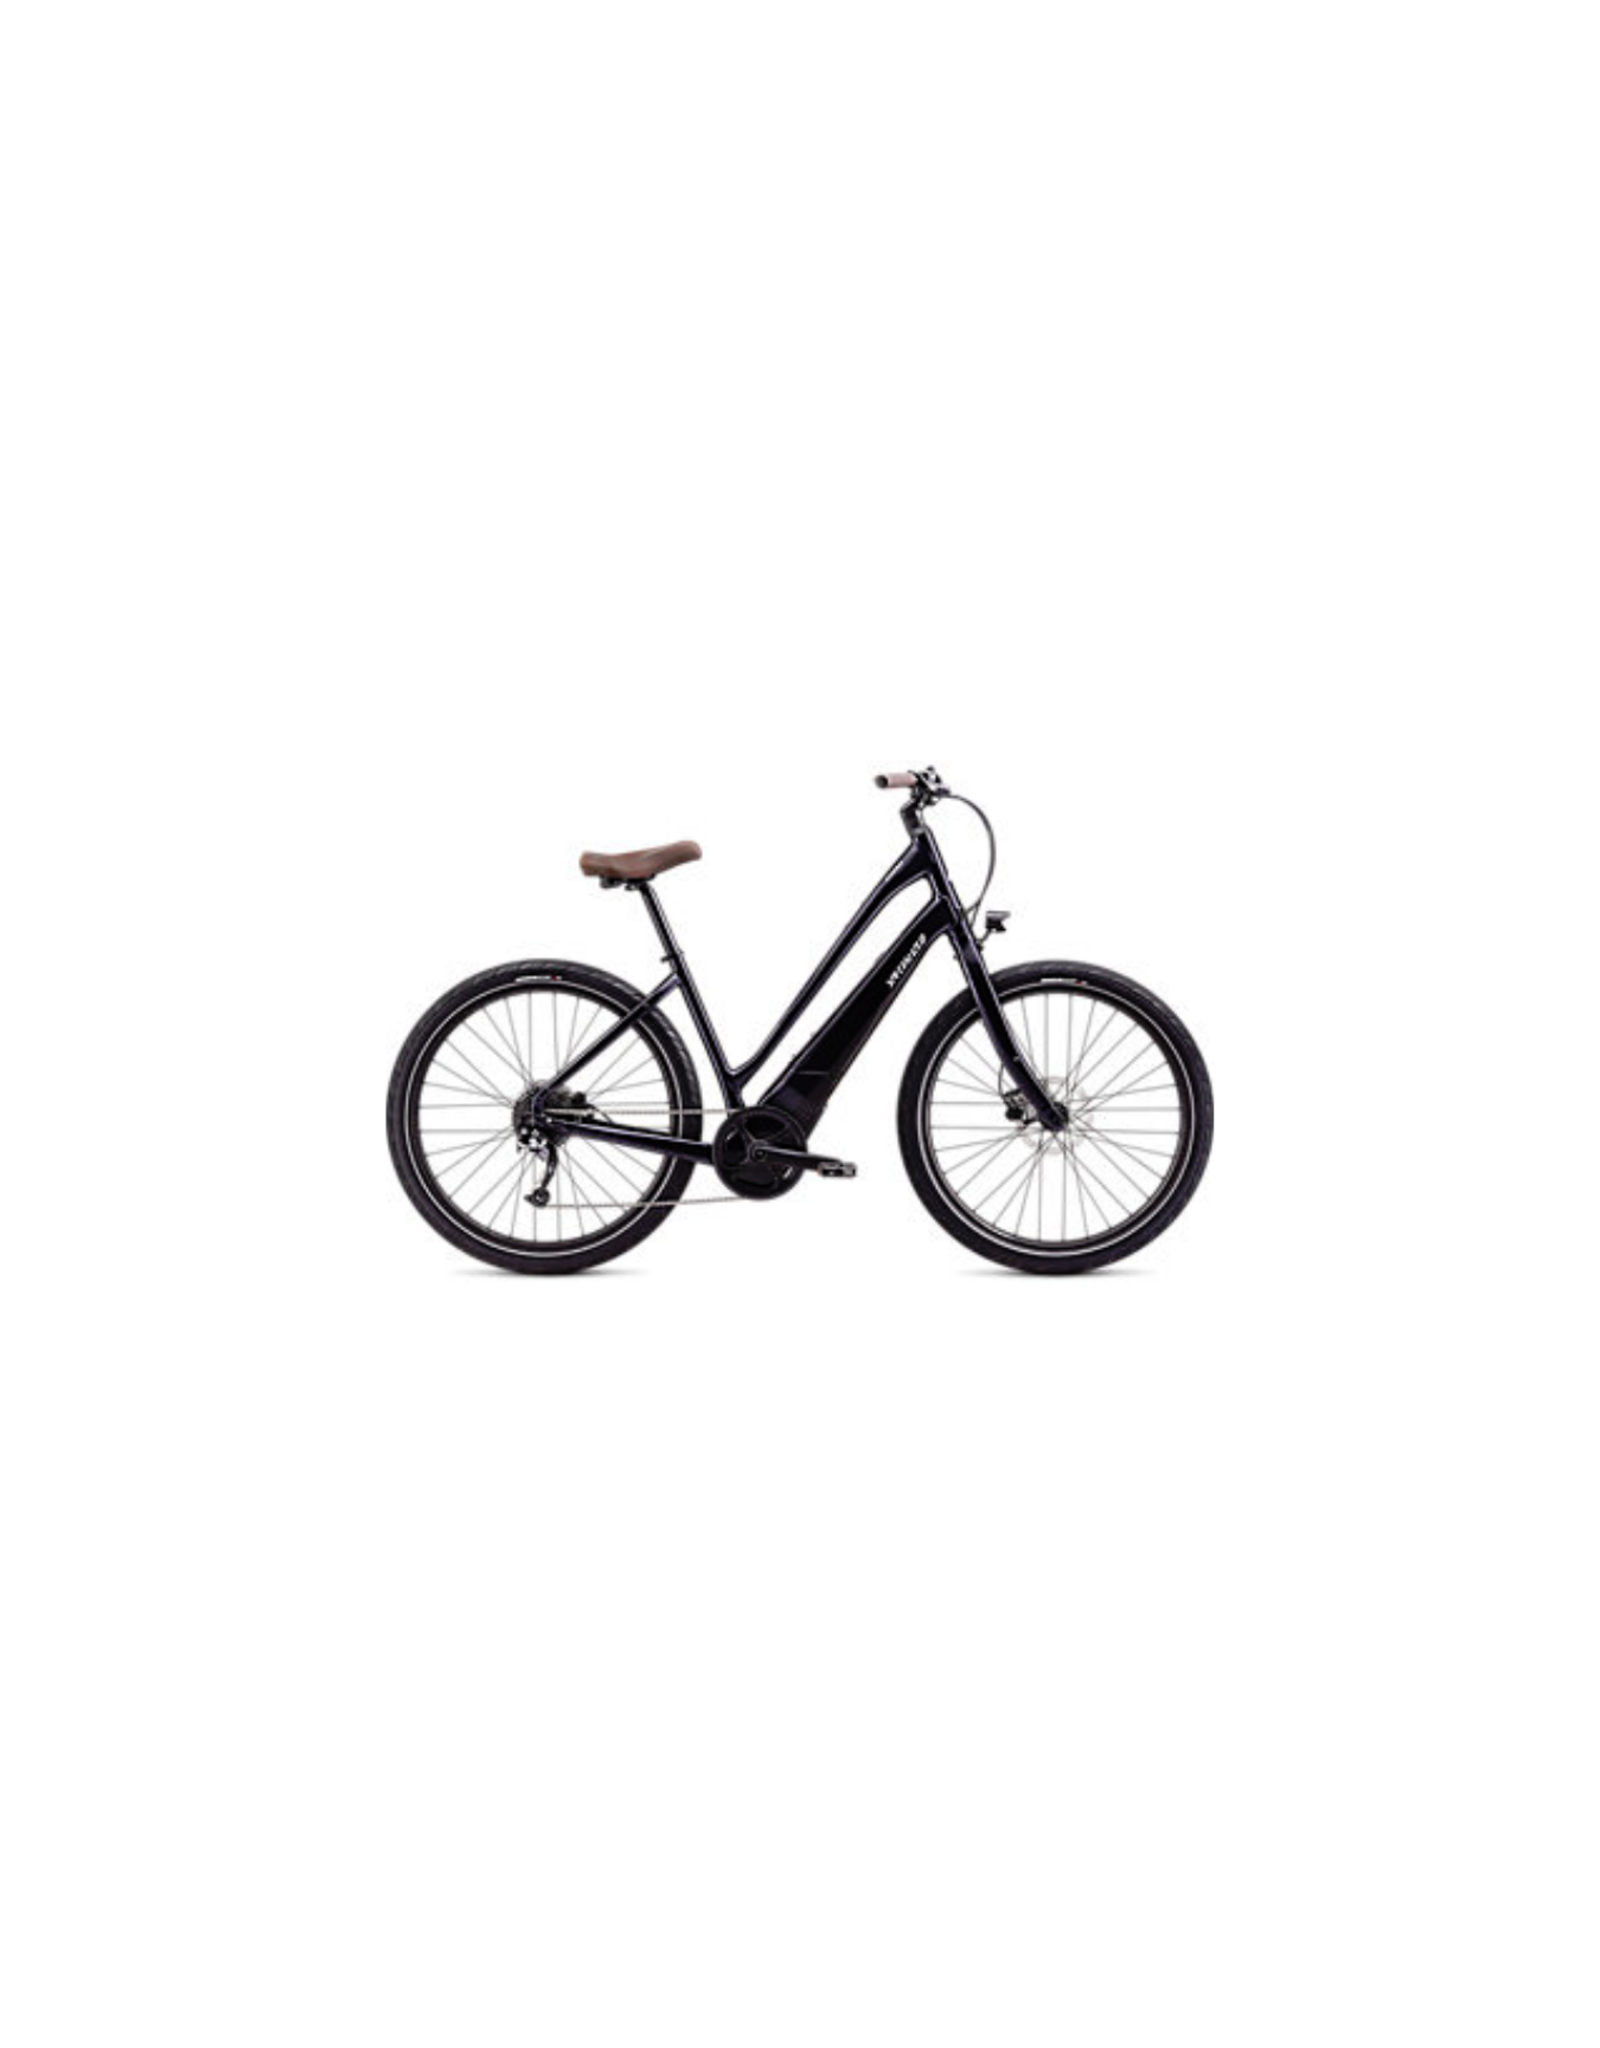 Specialized COMO 3.0 LOW ENTRY 650B NRBLK/BLUGSTPRL/DOVGRY SMALL